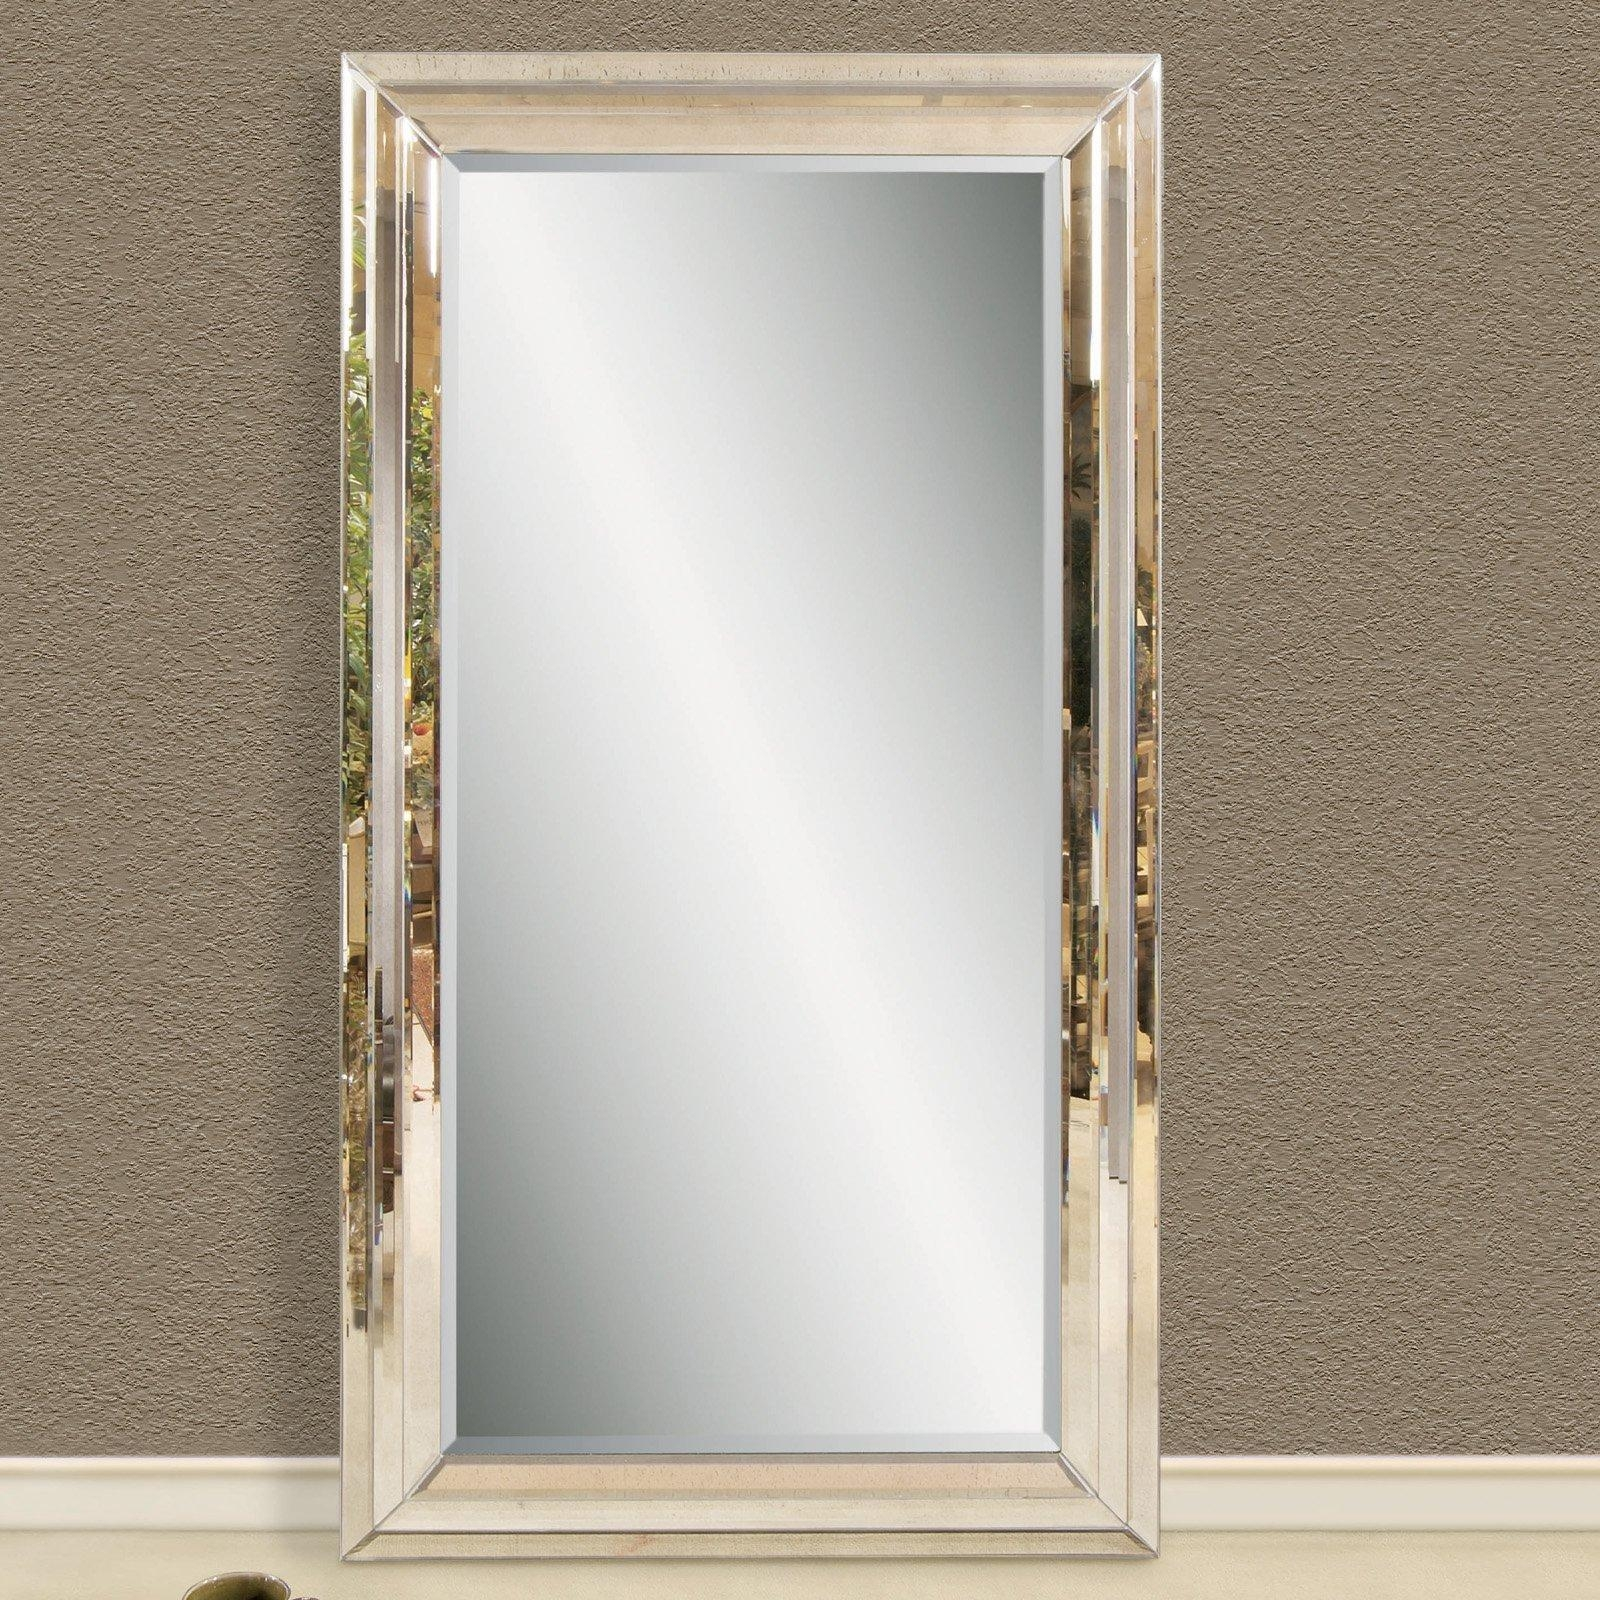 Full Length Mirror Ideas 20 43 Extra Large Full Length Mirror Mirror Ideas